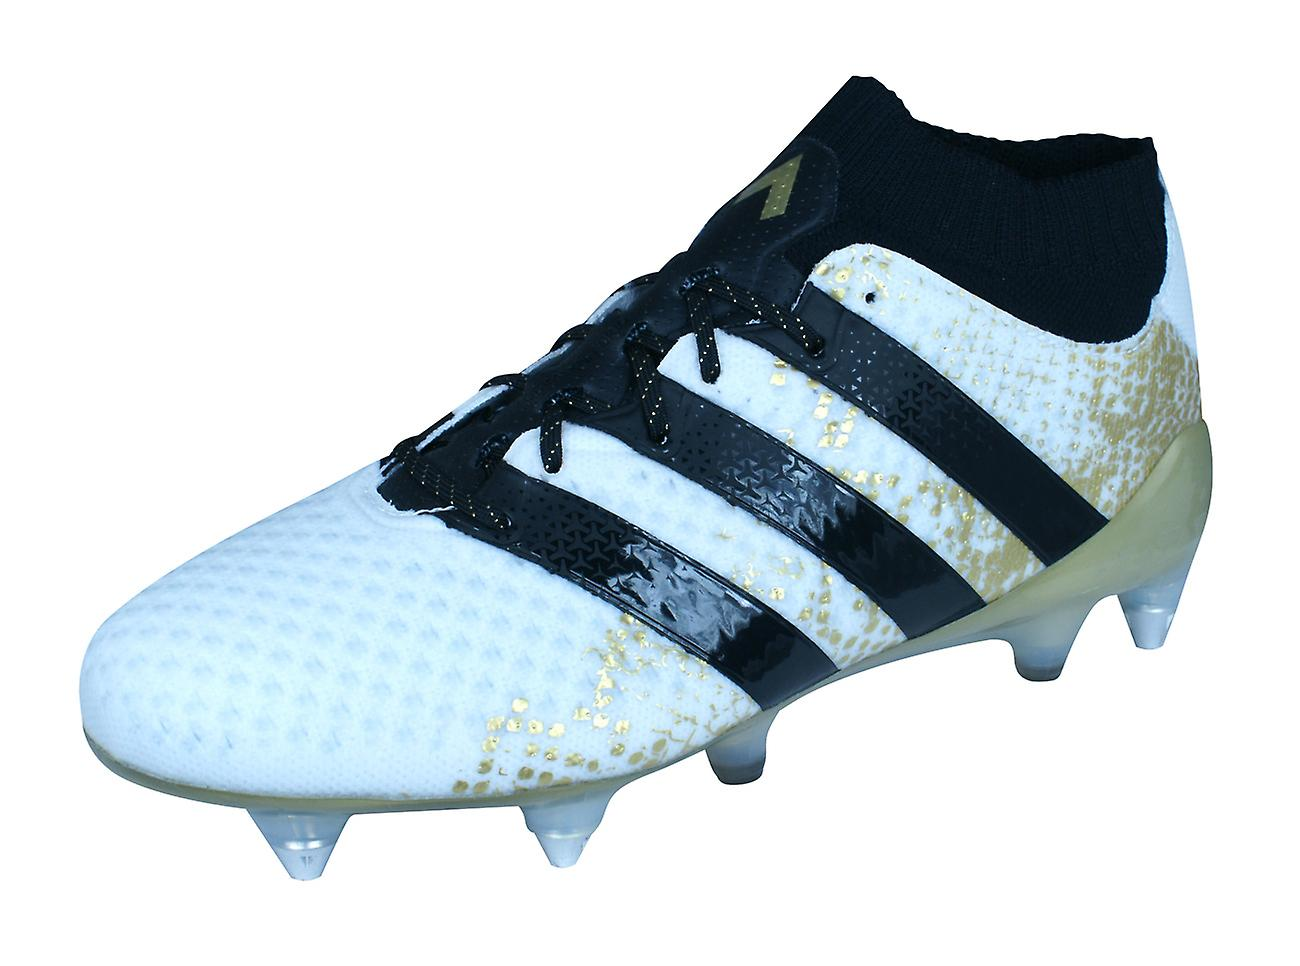 sale retailer be210 6c925 adidas Ace 16.1 Primeknit SG Mens Football Boots / Cleats - White and Gold